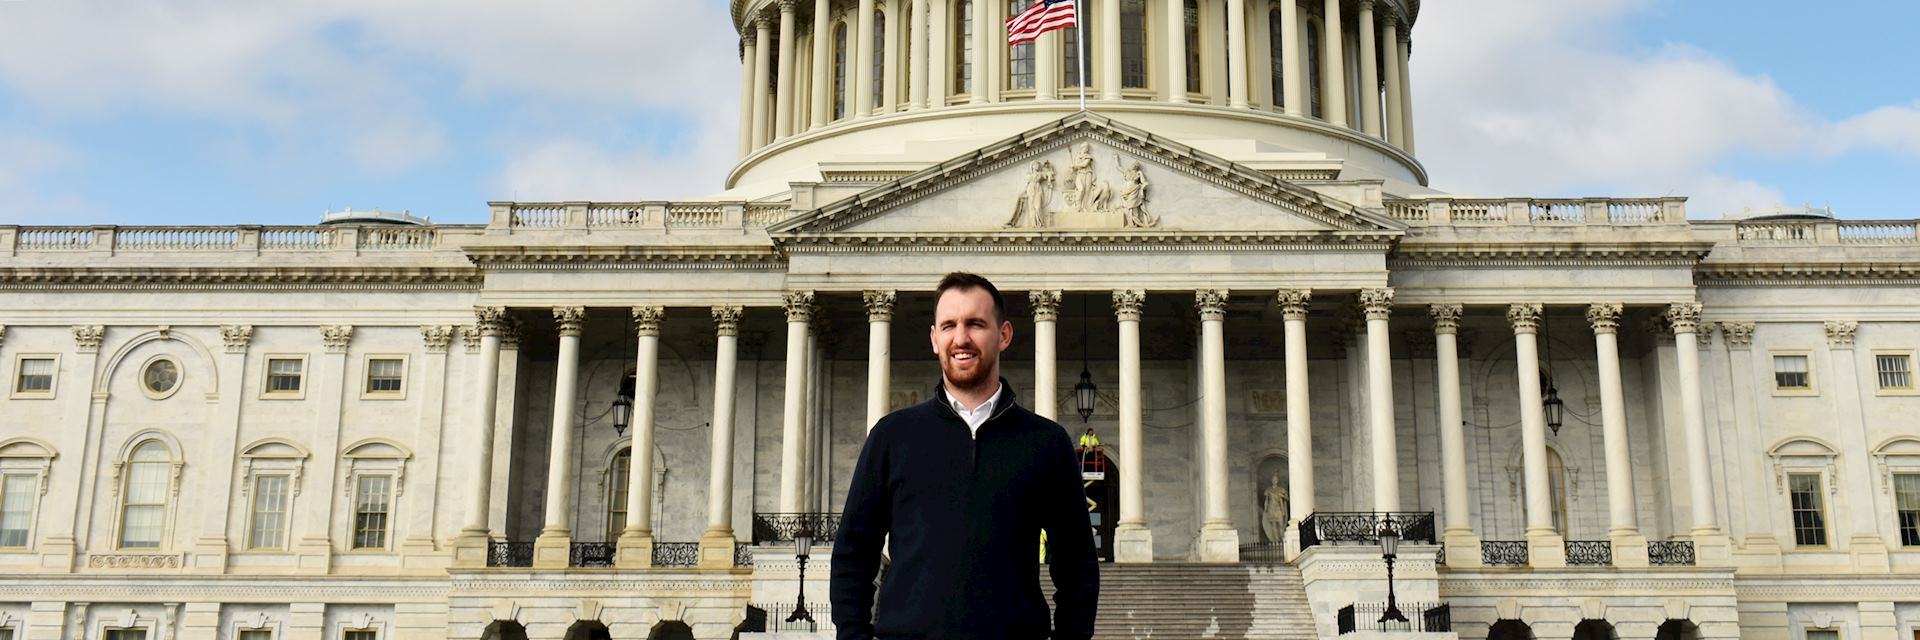 Jonathan in front of the Capitol Building, Washington DC